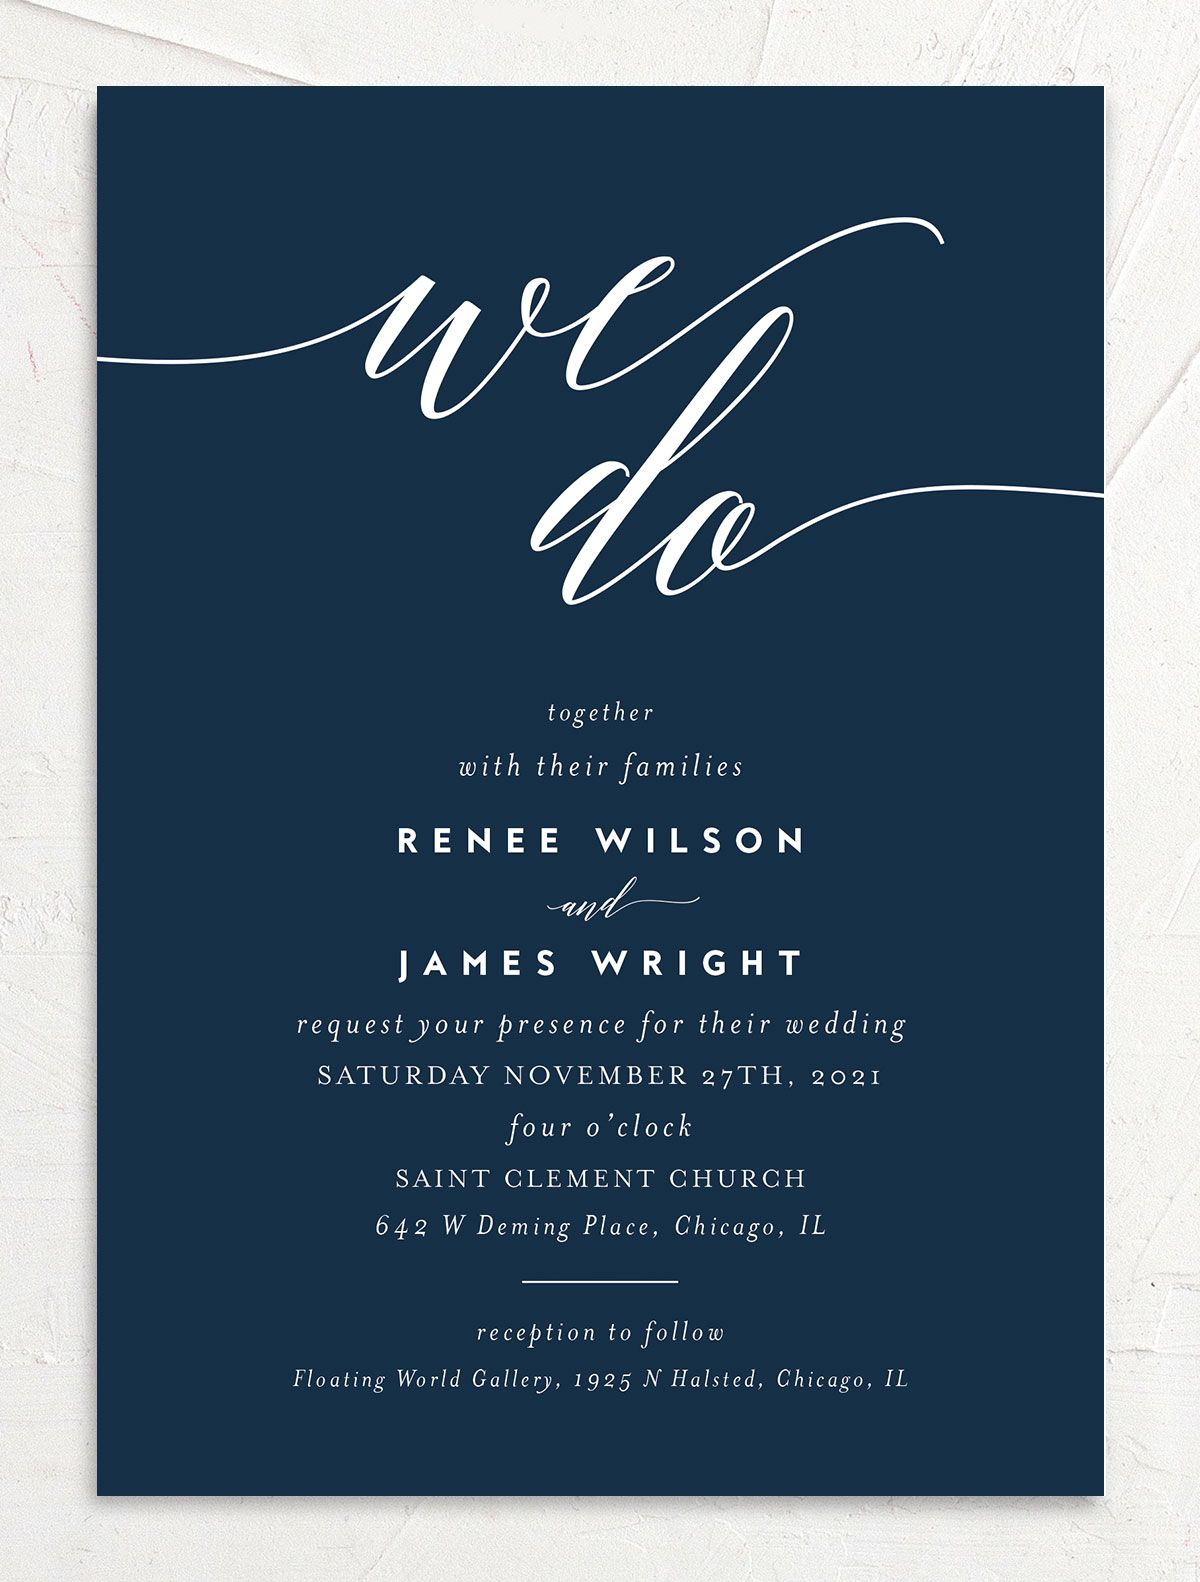 We Do Wedding Invites in navy